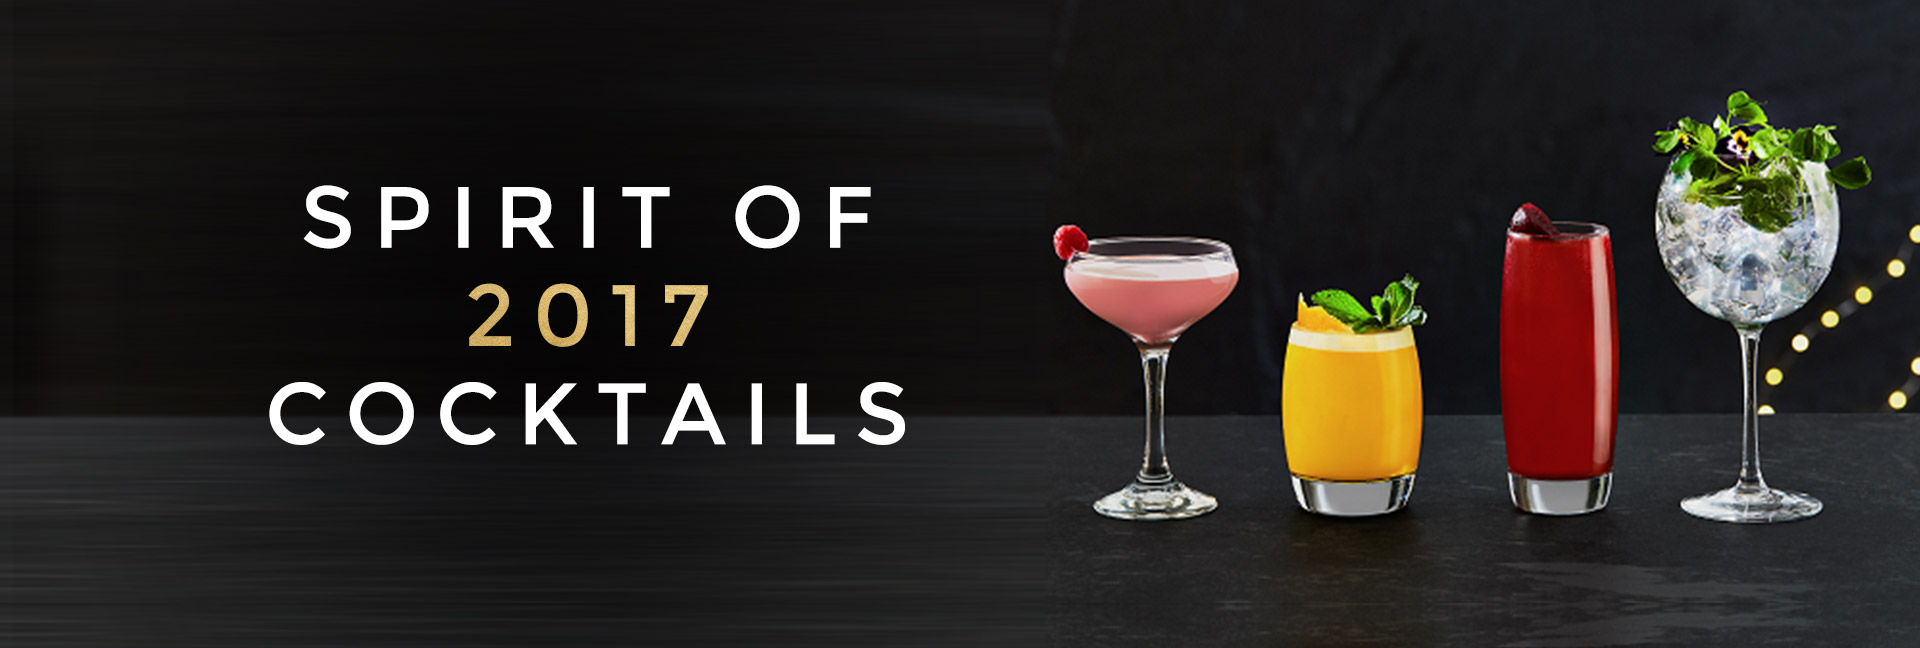 Spirit of 2017 cocktails at All Bar One Brighton